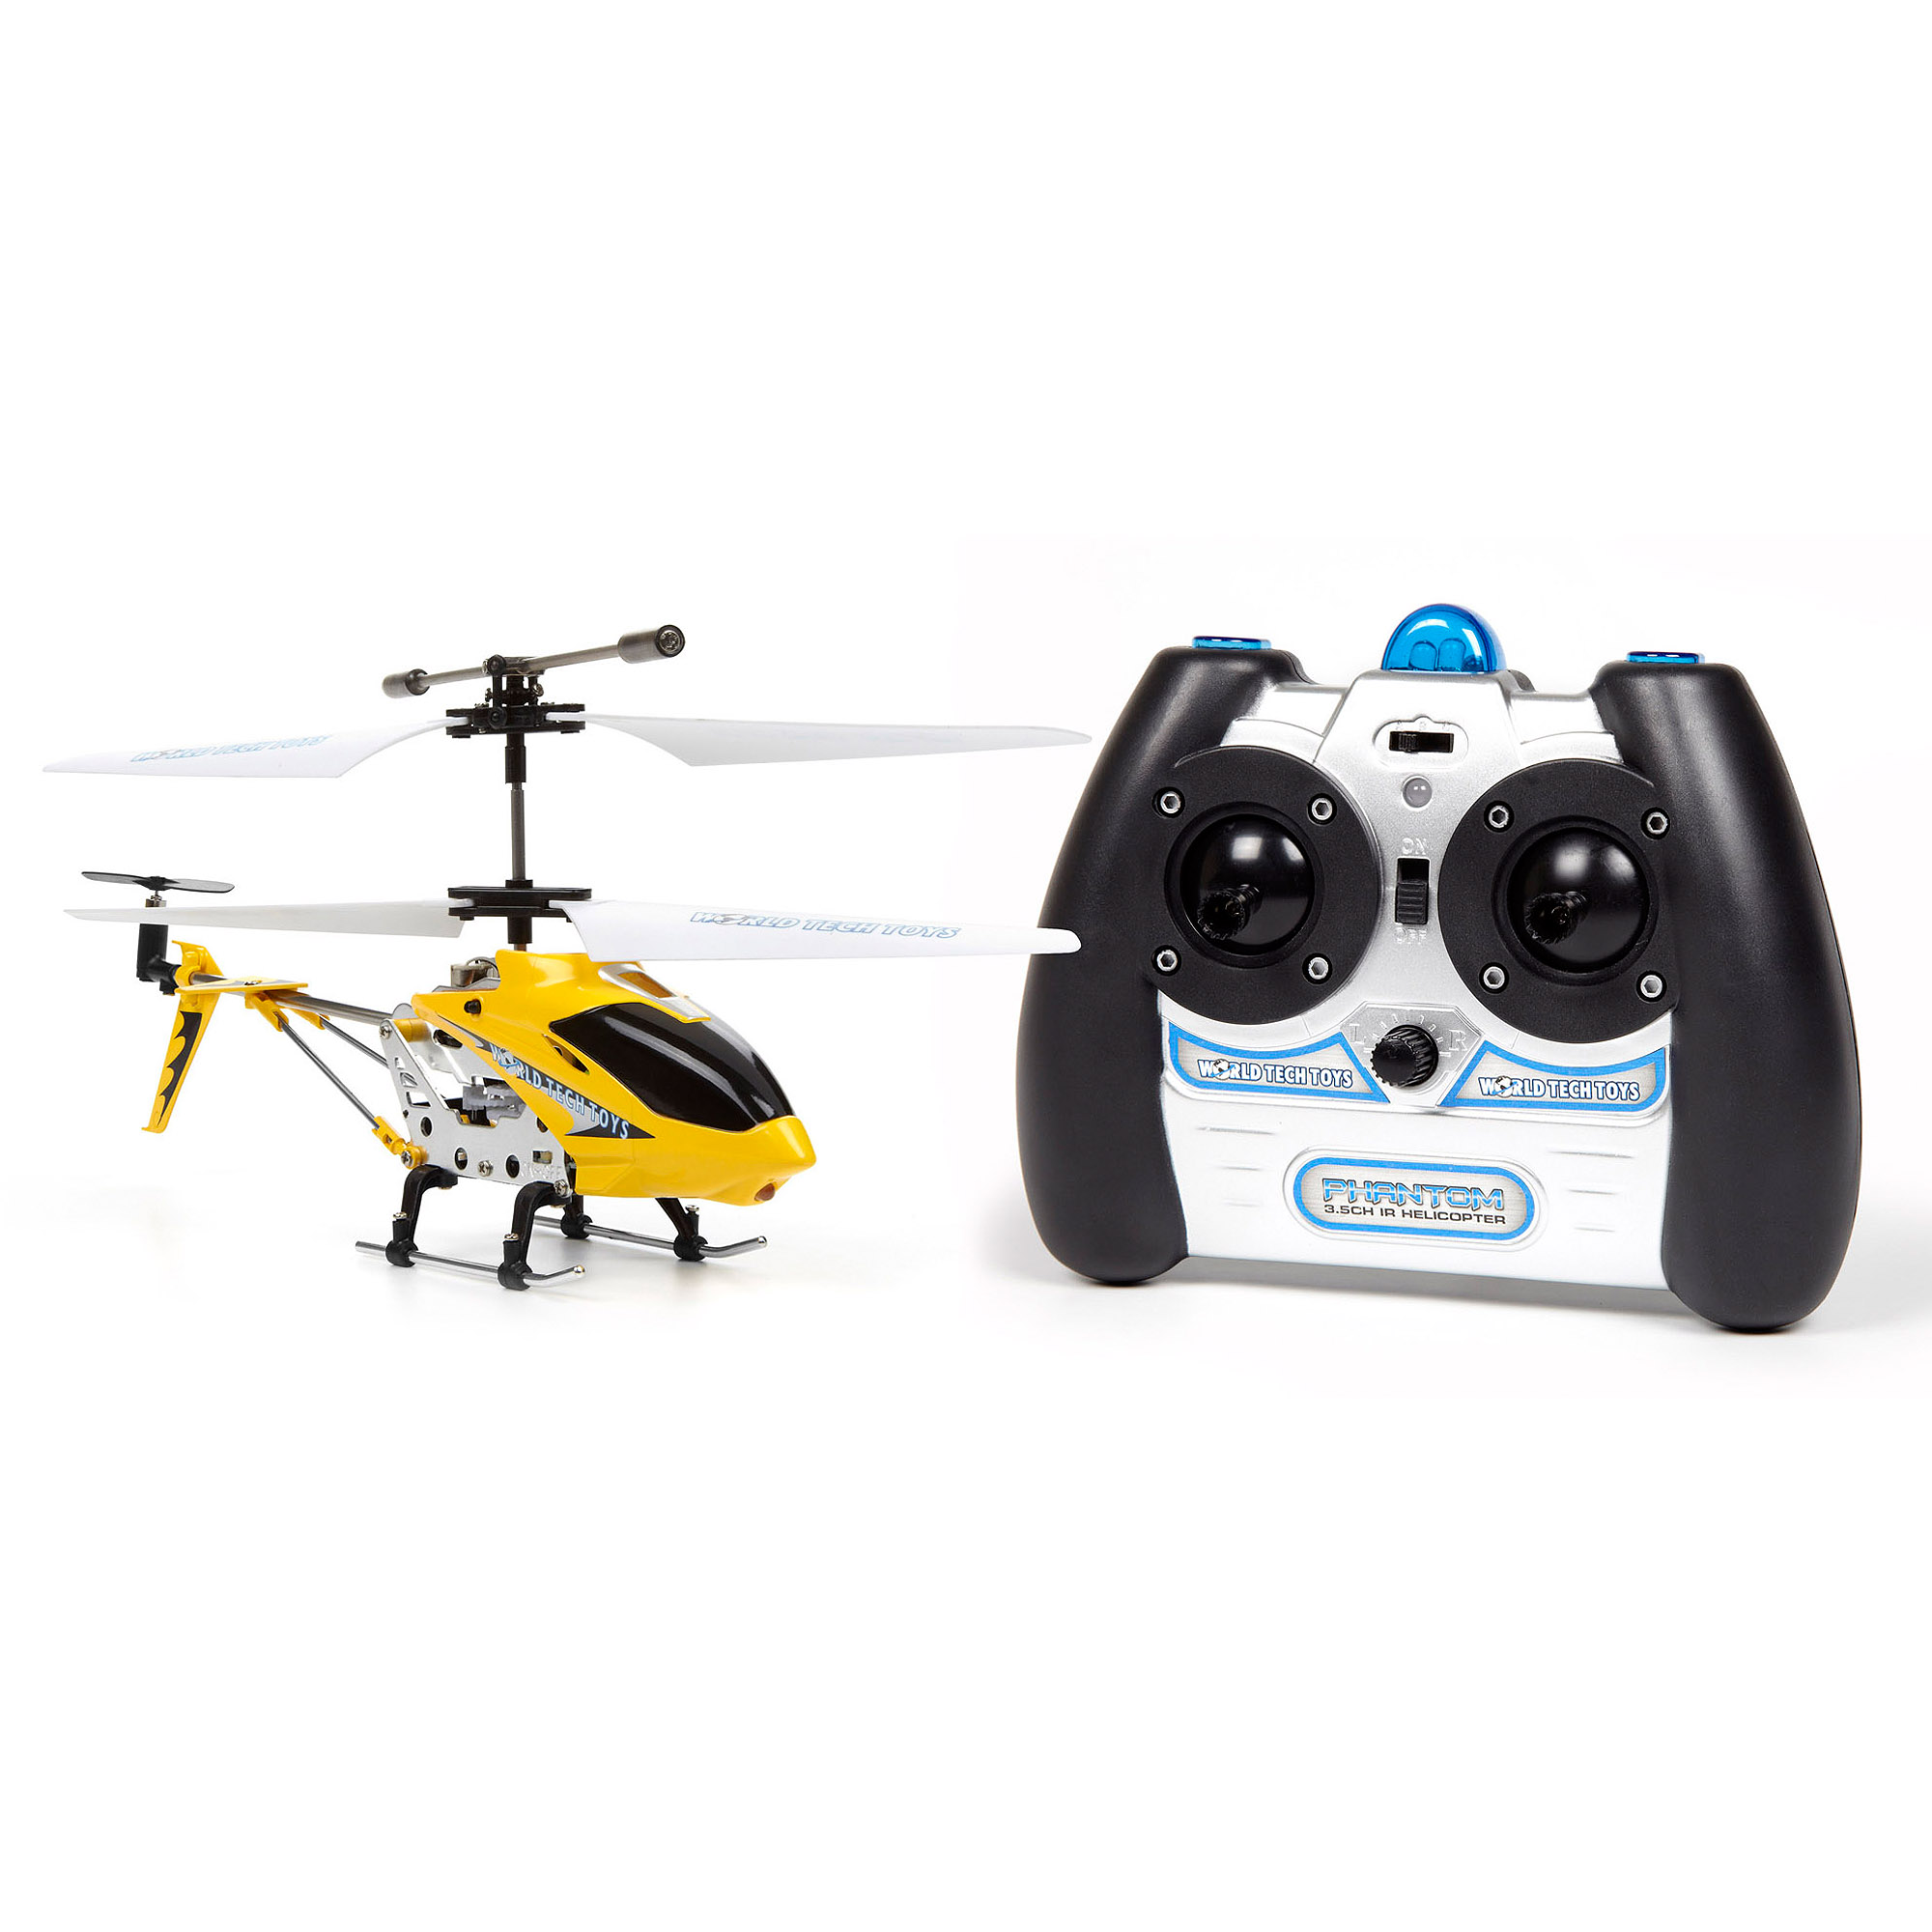 World Tech Toys 34462 3.5-Channel Phantom Gyro IR Helicopter